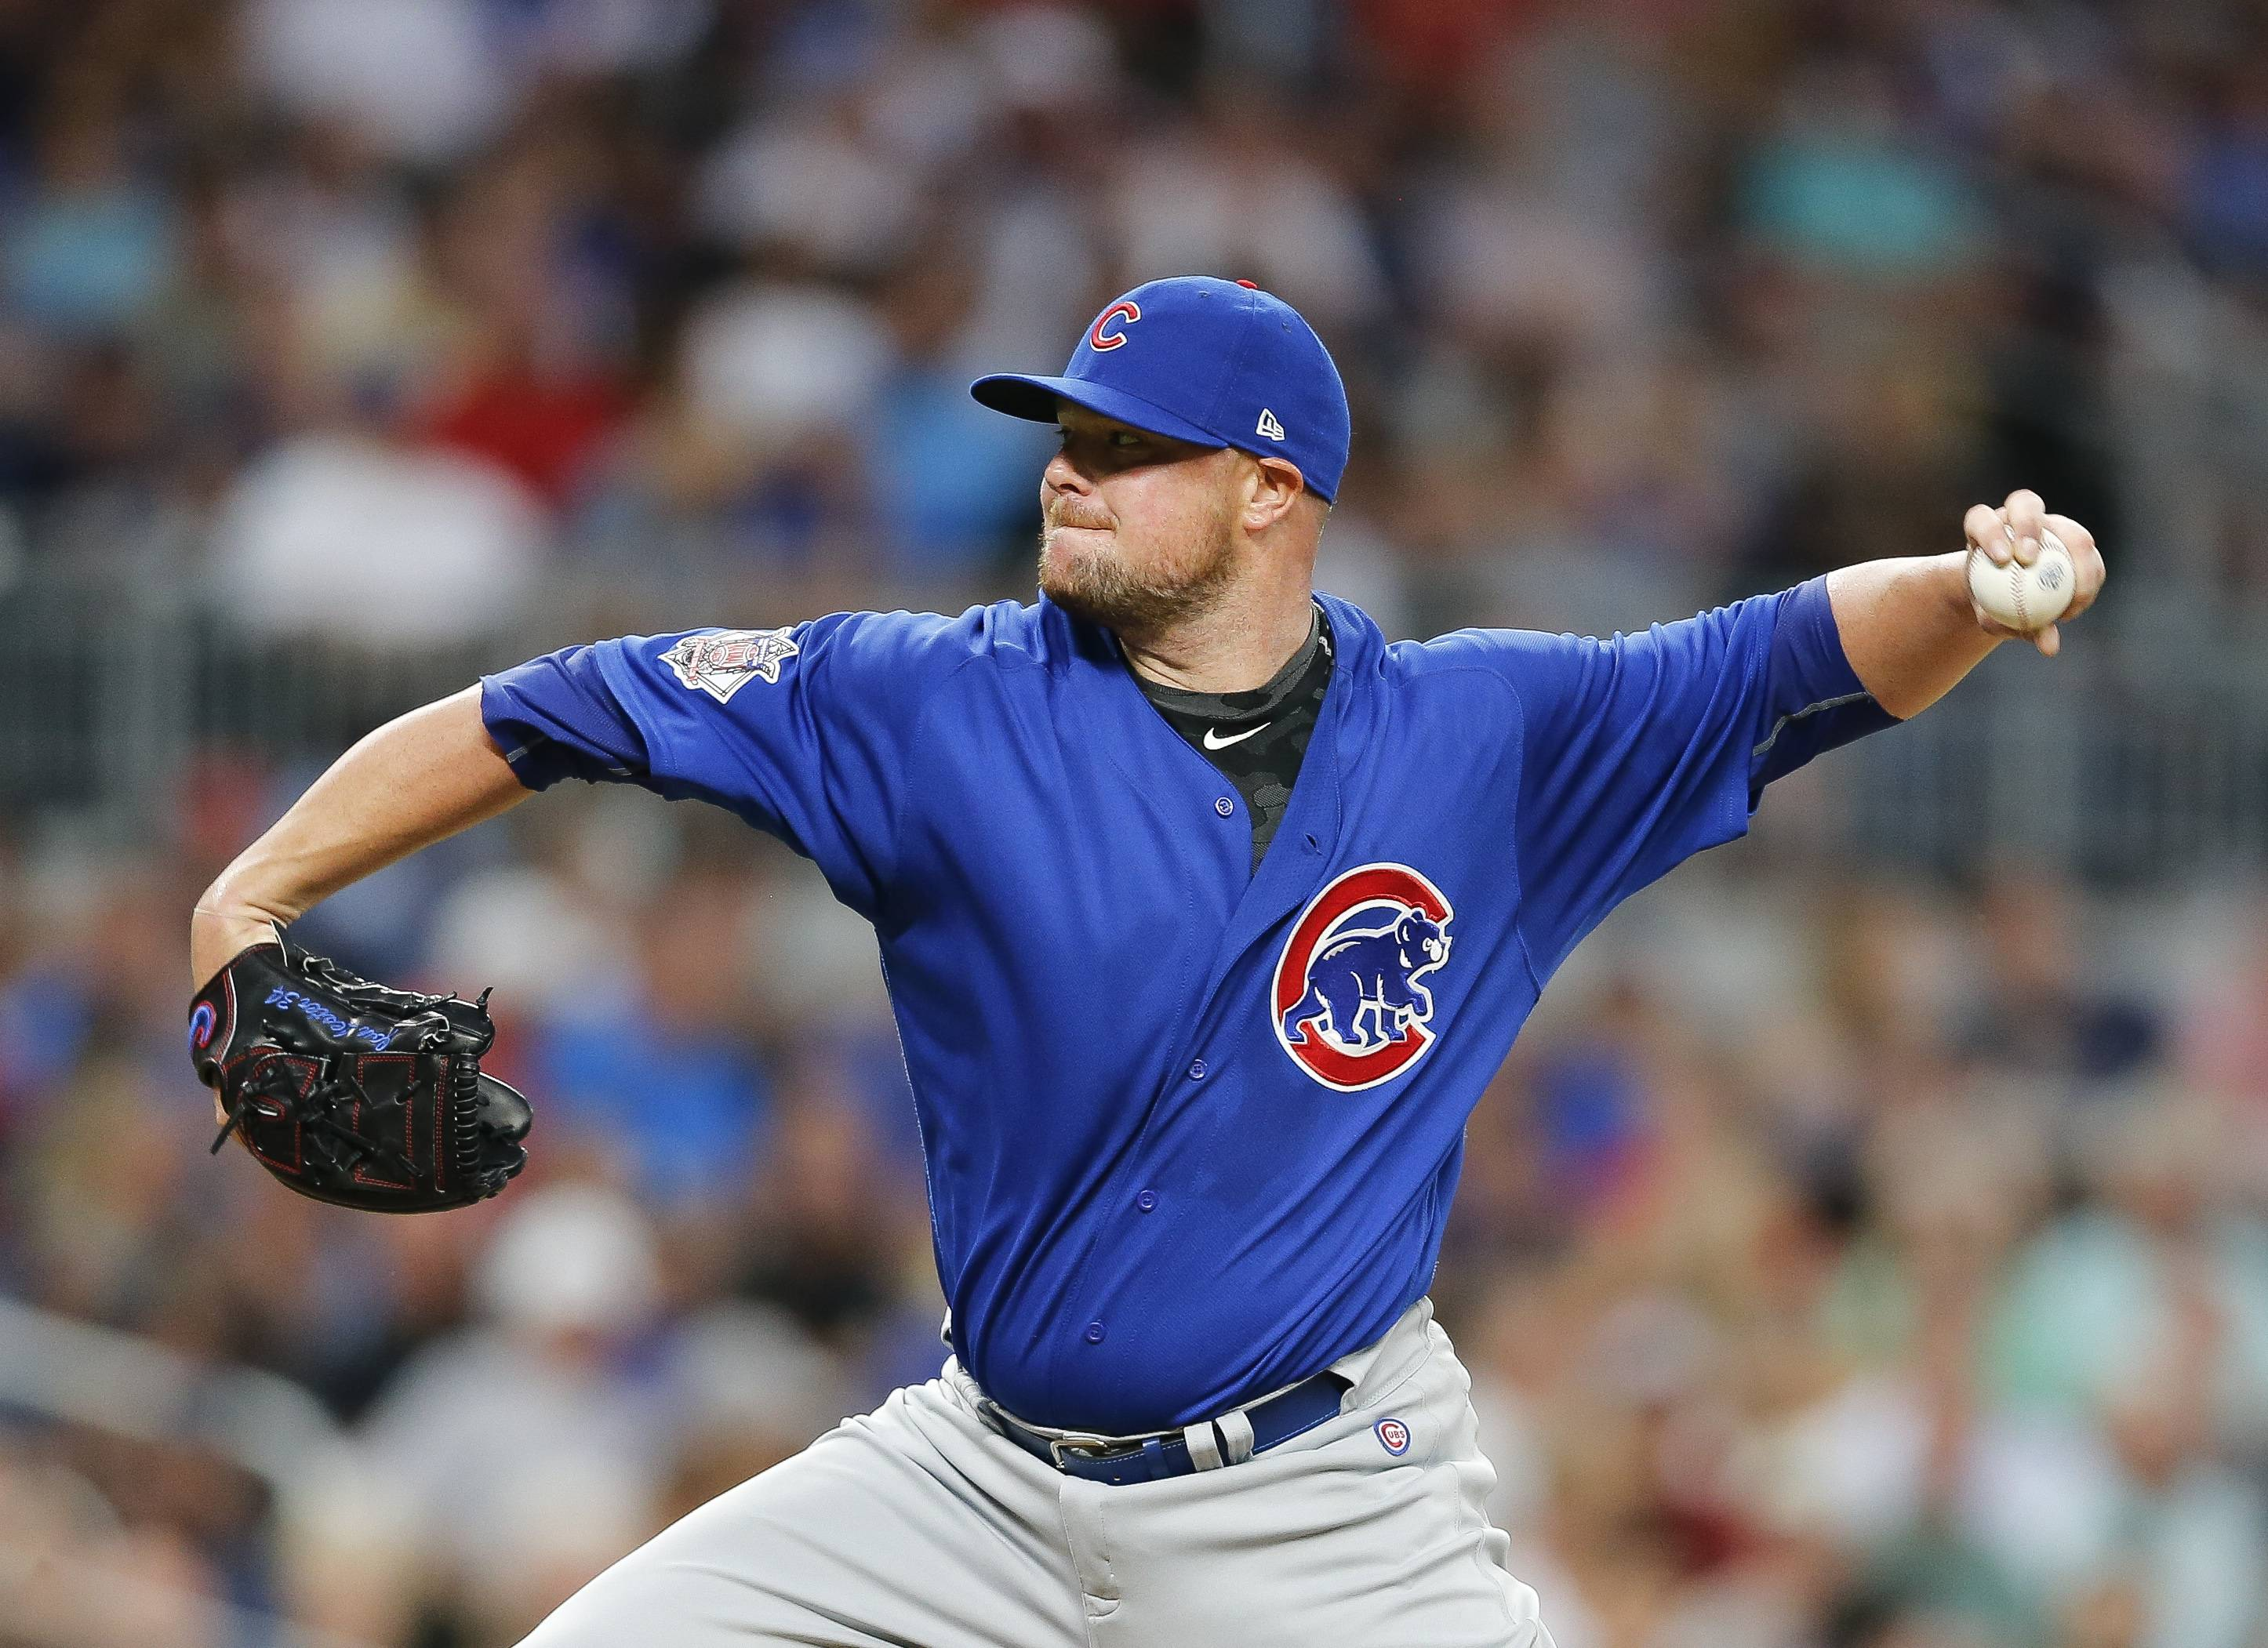 Chicago Cubs starting pitcher Jon Lester works during the first inning of the team's baseball game against the Atlanta Braves on Monday, July 17, 2017, in Atlanta.